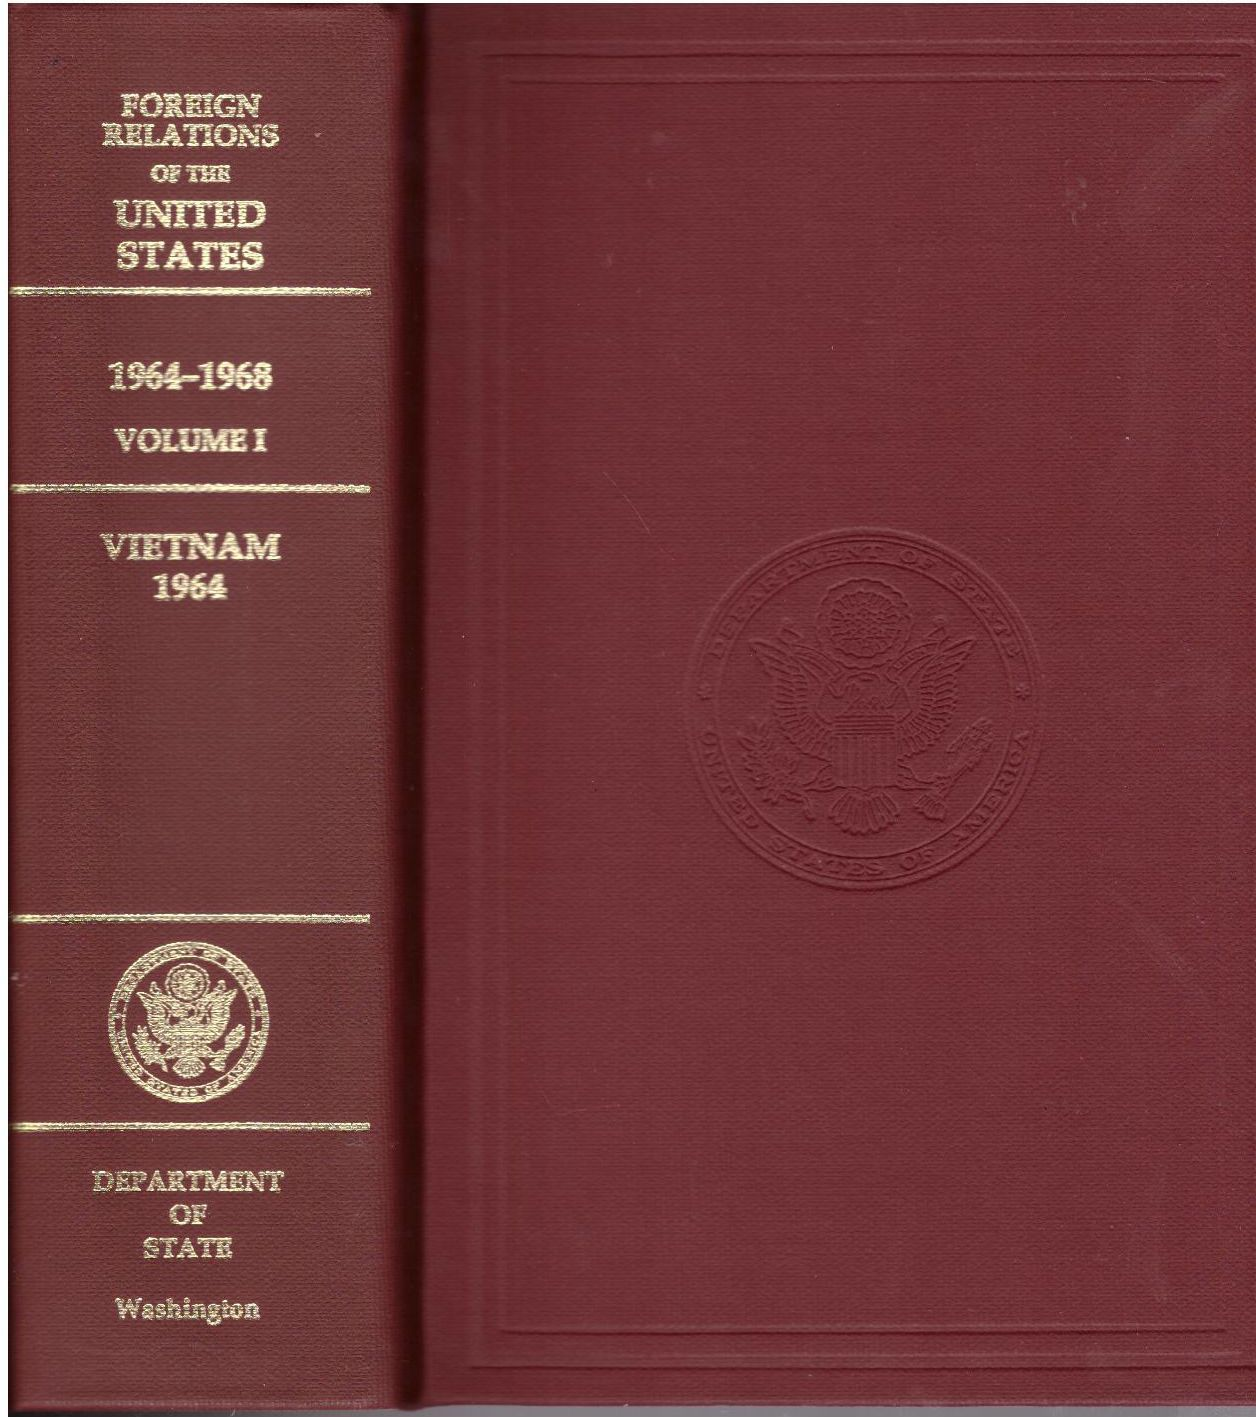 Foreign Relations of the United States, 1964-1968, Volume I: Vietnam, 1964